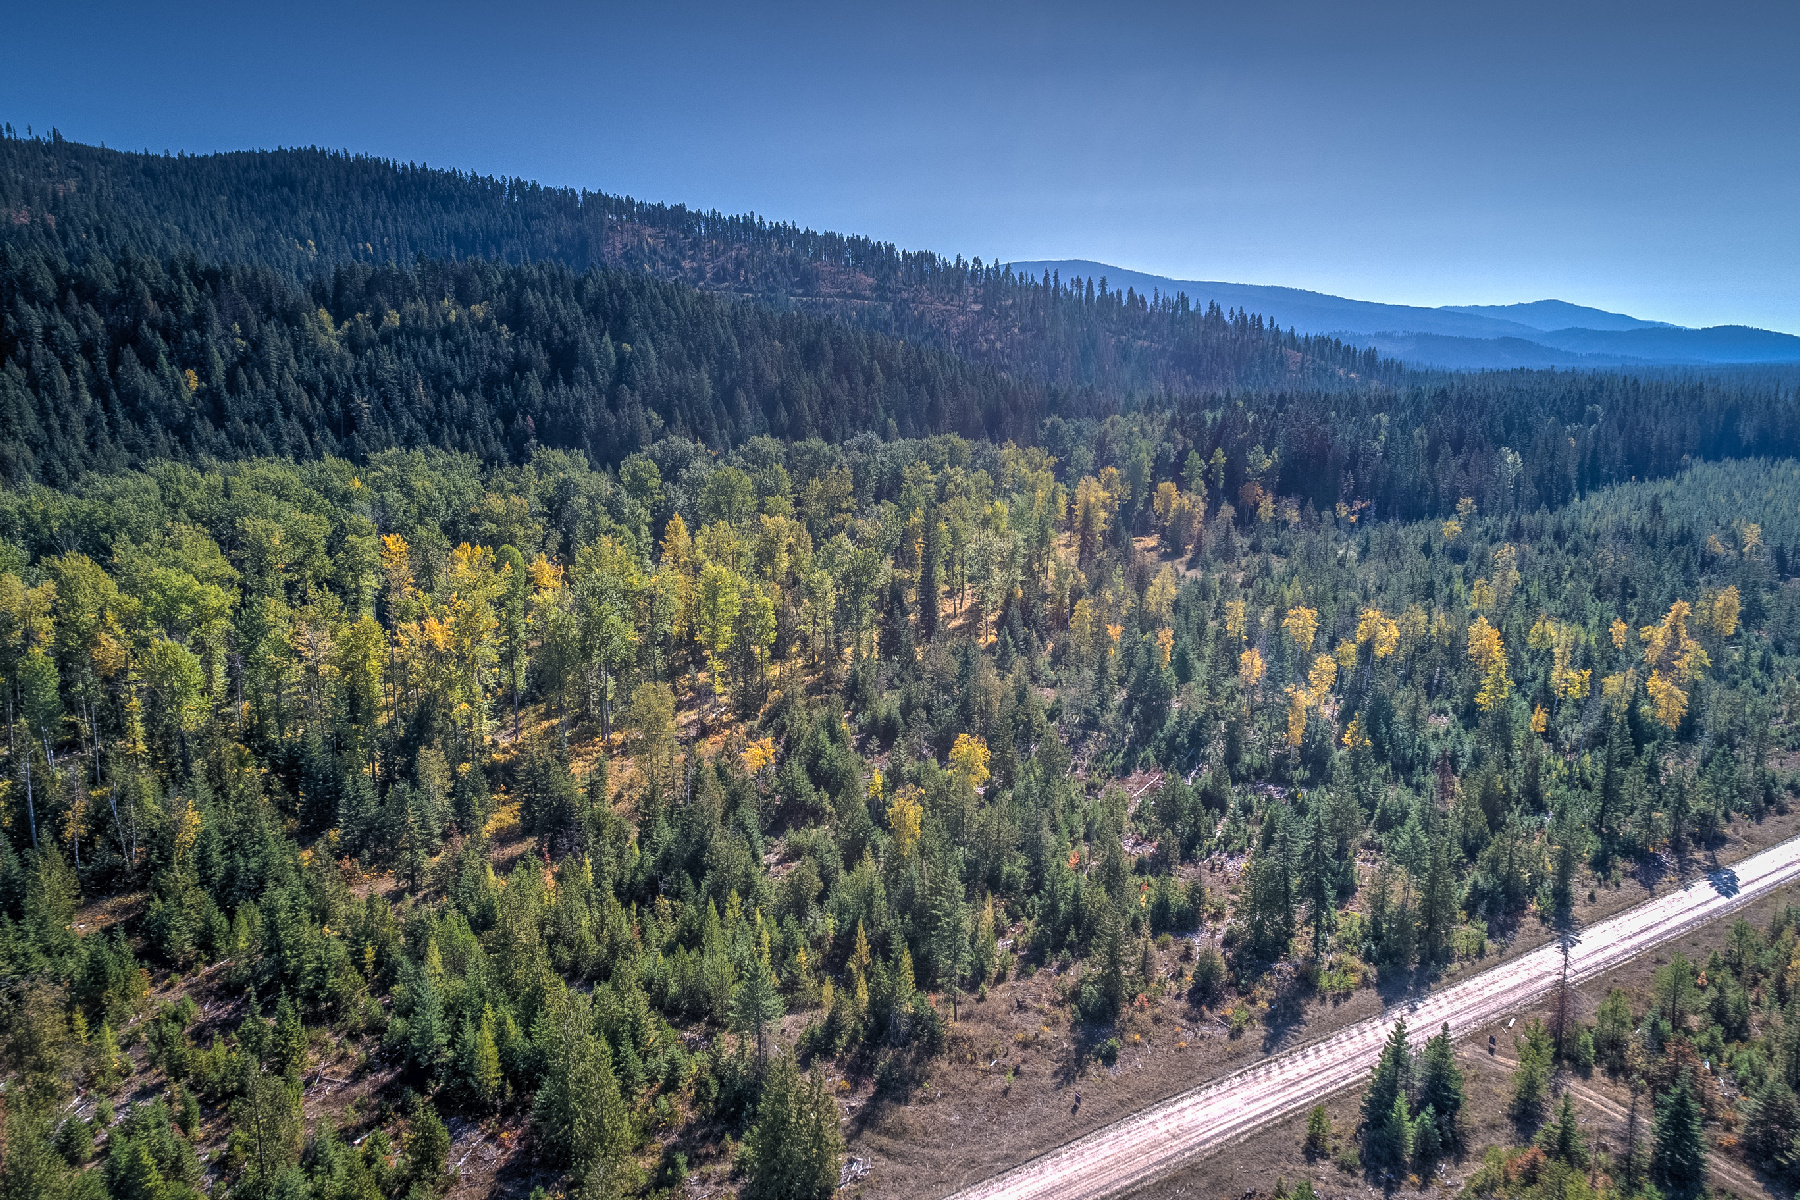 Land for Sale at BUSHWOOD ESTATES Lot 7 1406 Lost Creek Rd Coolin, Idaho 83821 United States